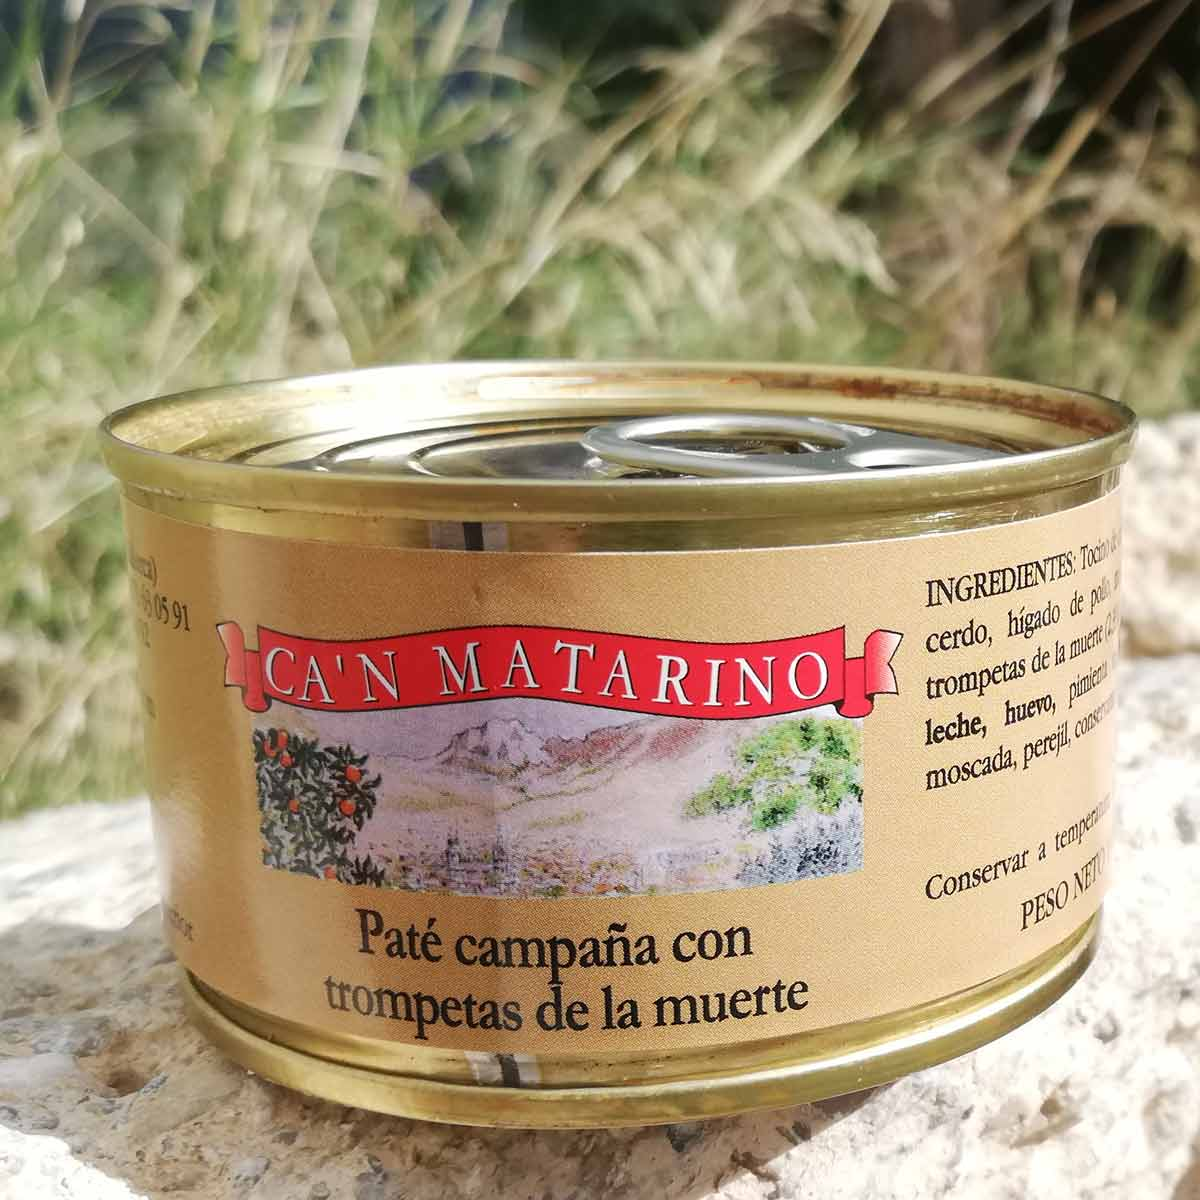 Ca\\'n Matarino Paté campaña, liver paté in the traditional way